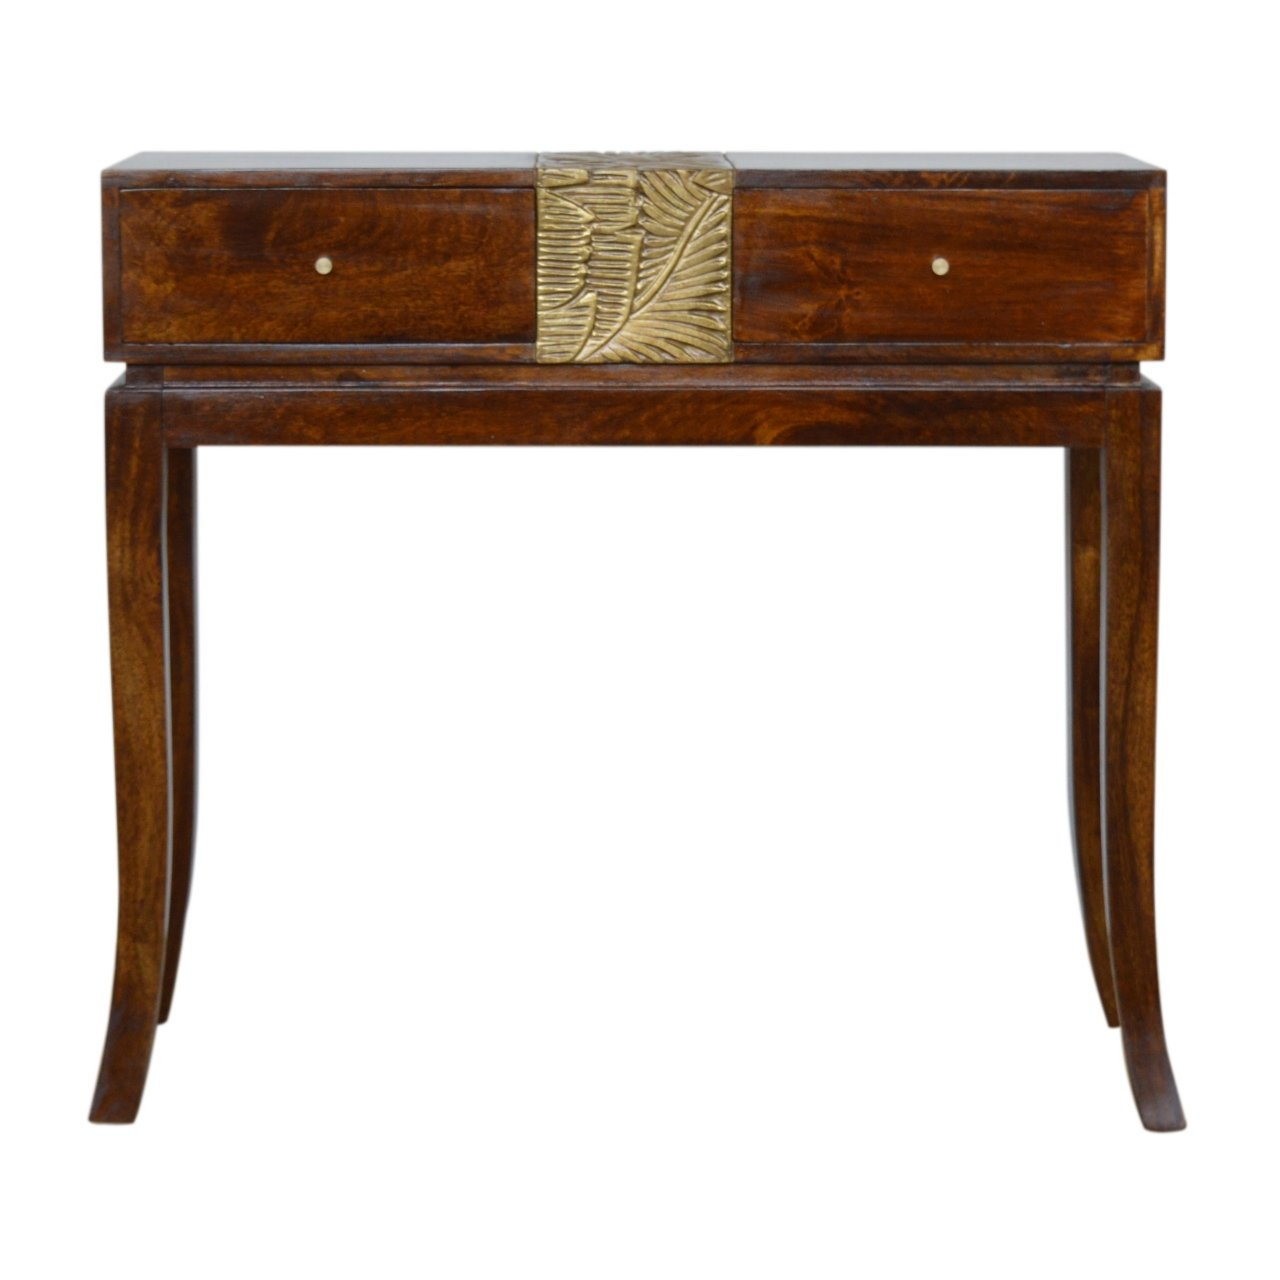 Tropical Leaf Carved Chestnut Brass Luxury Console Table Eco Sustainable 100% Solid Mango Wood